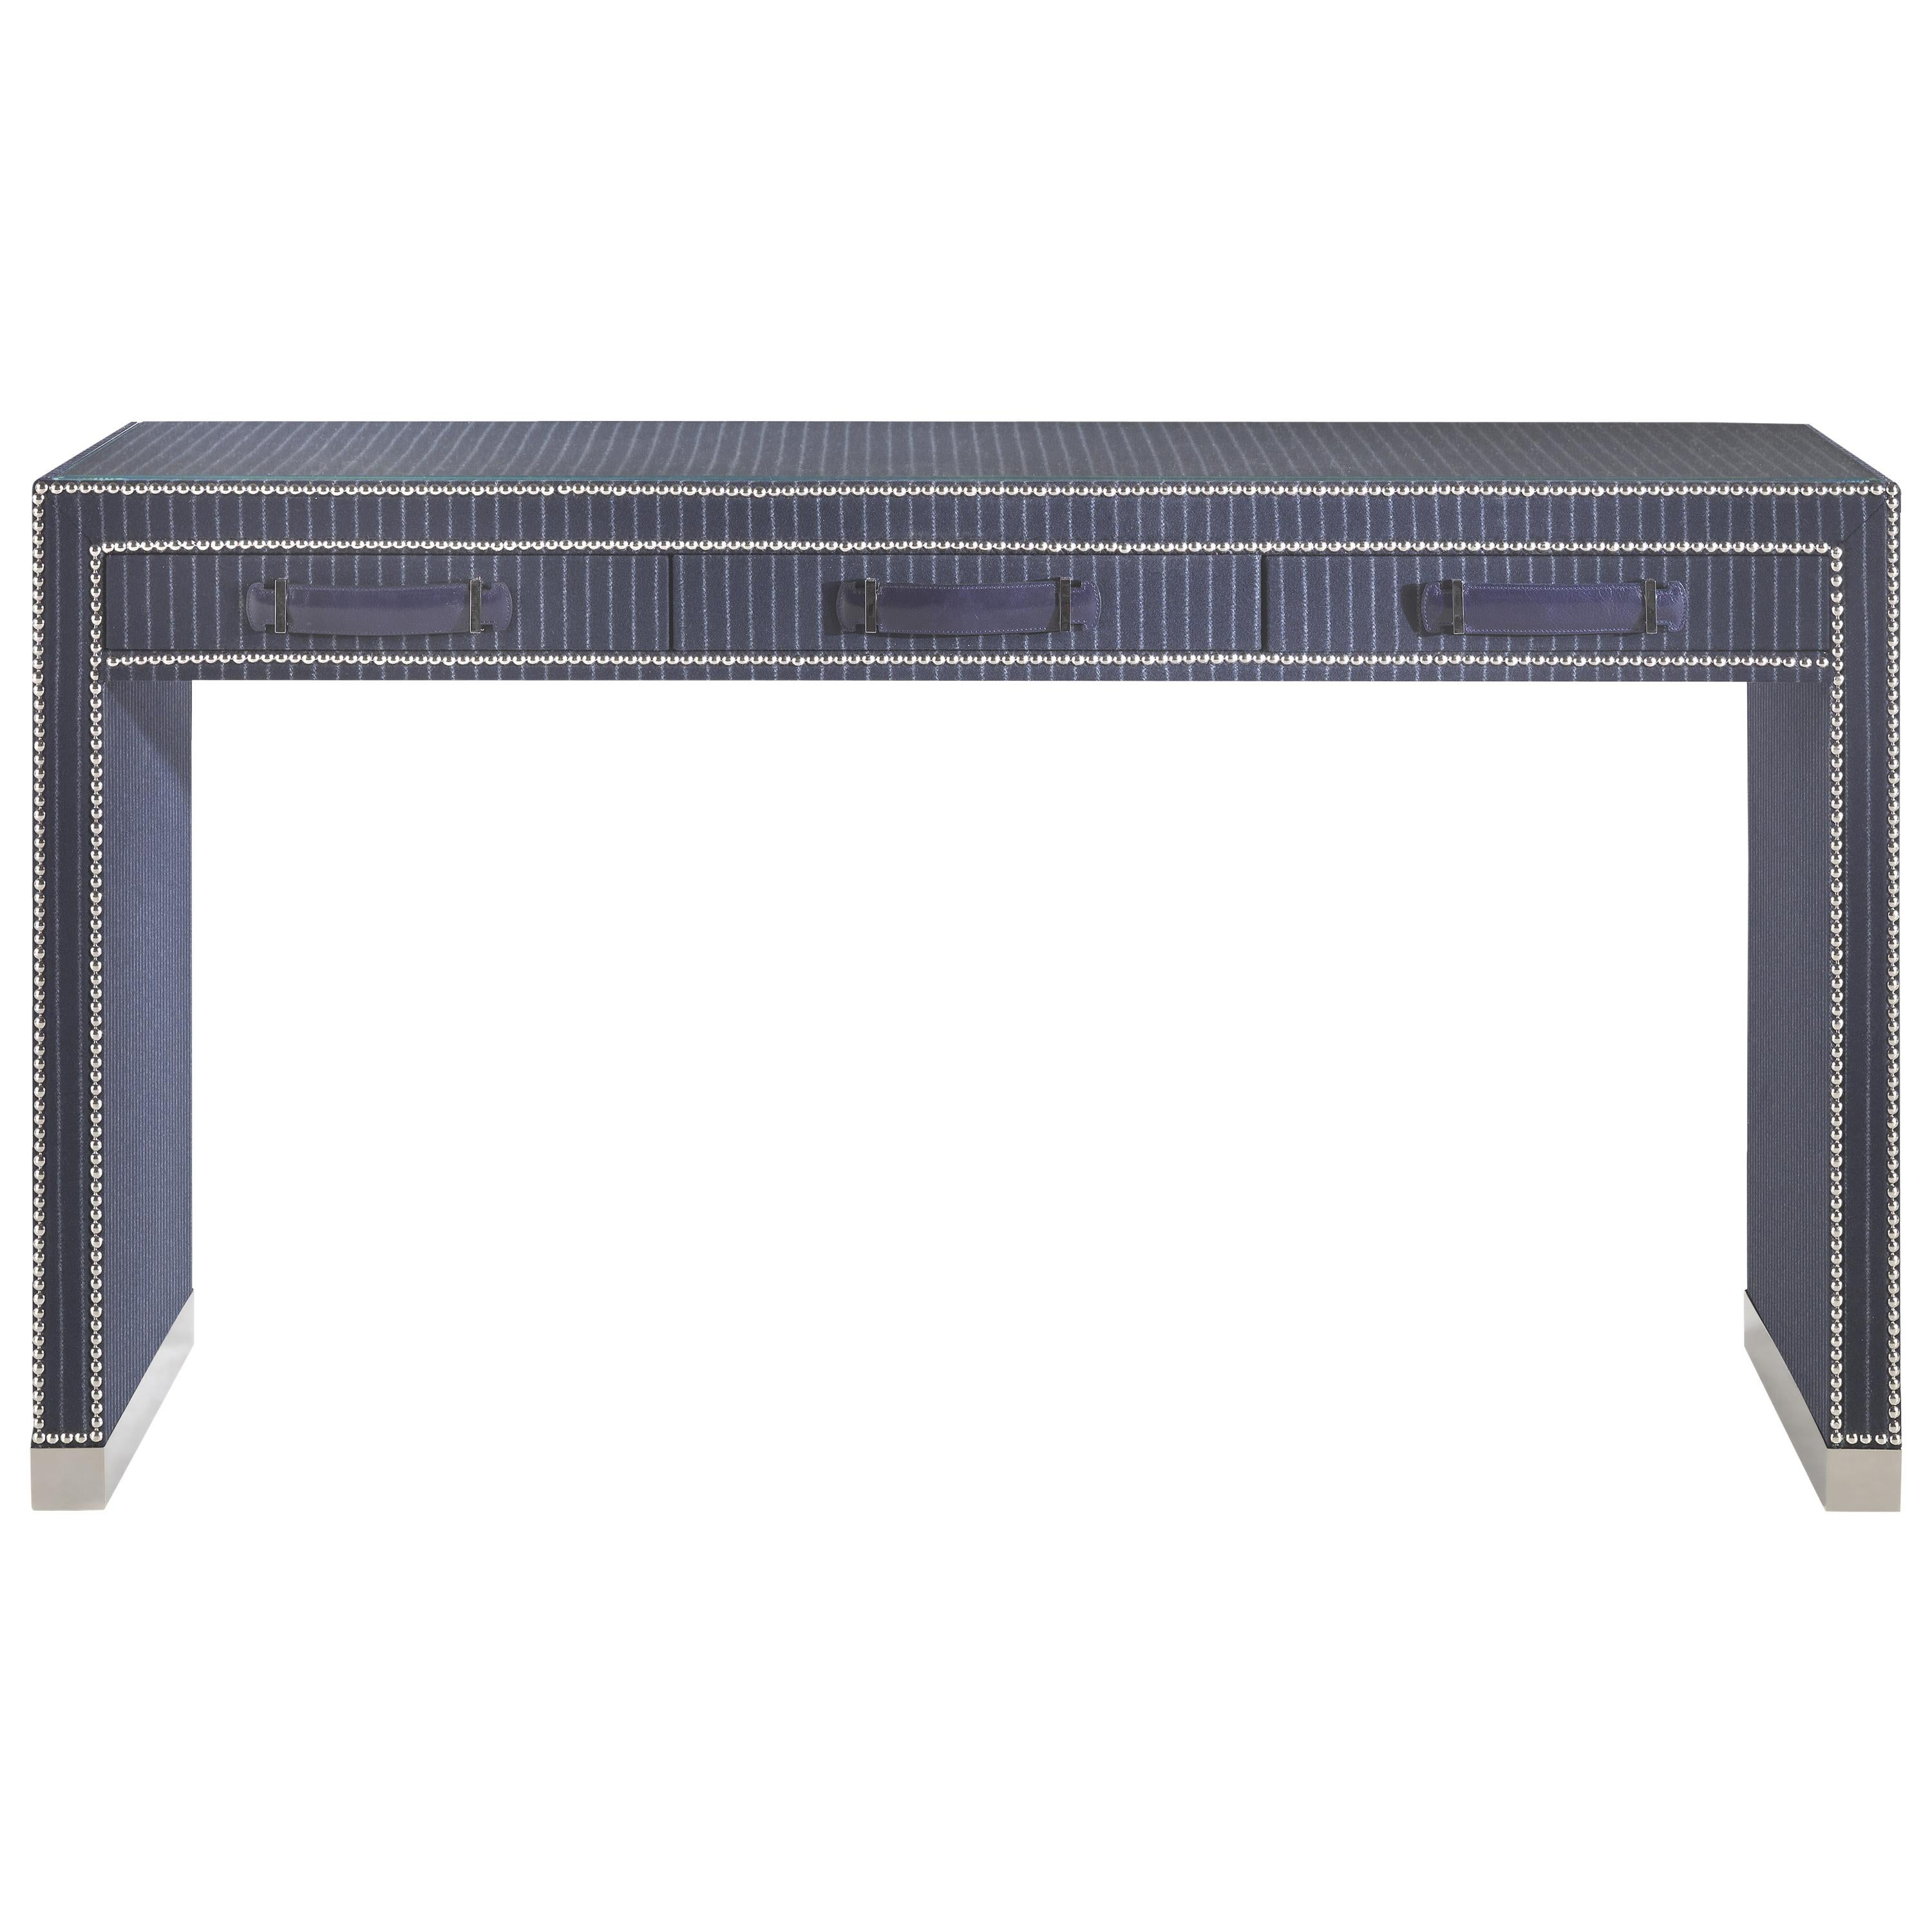 Gianfranco Ferré Home Hamilton Dressing Table covered in Wool